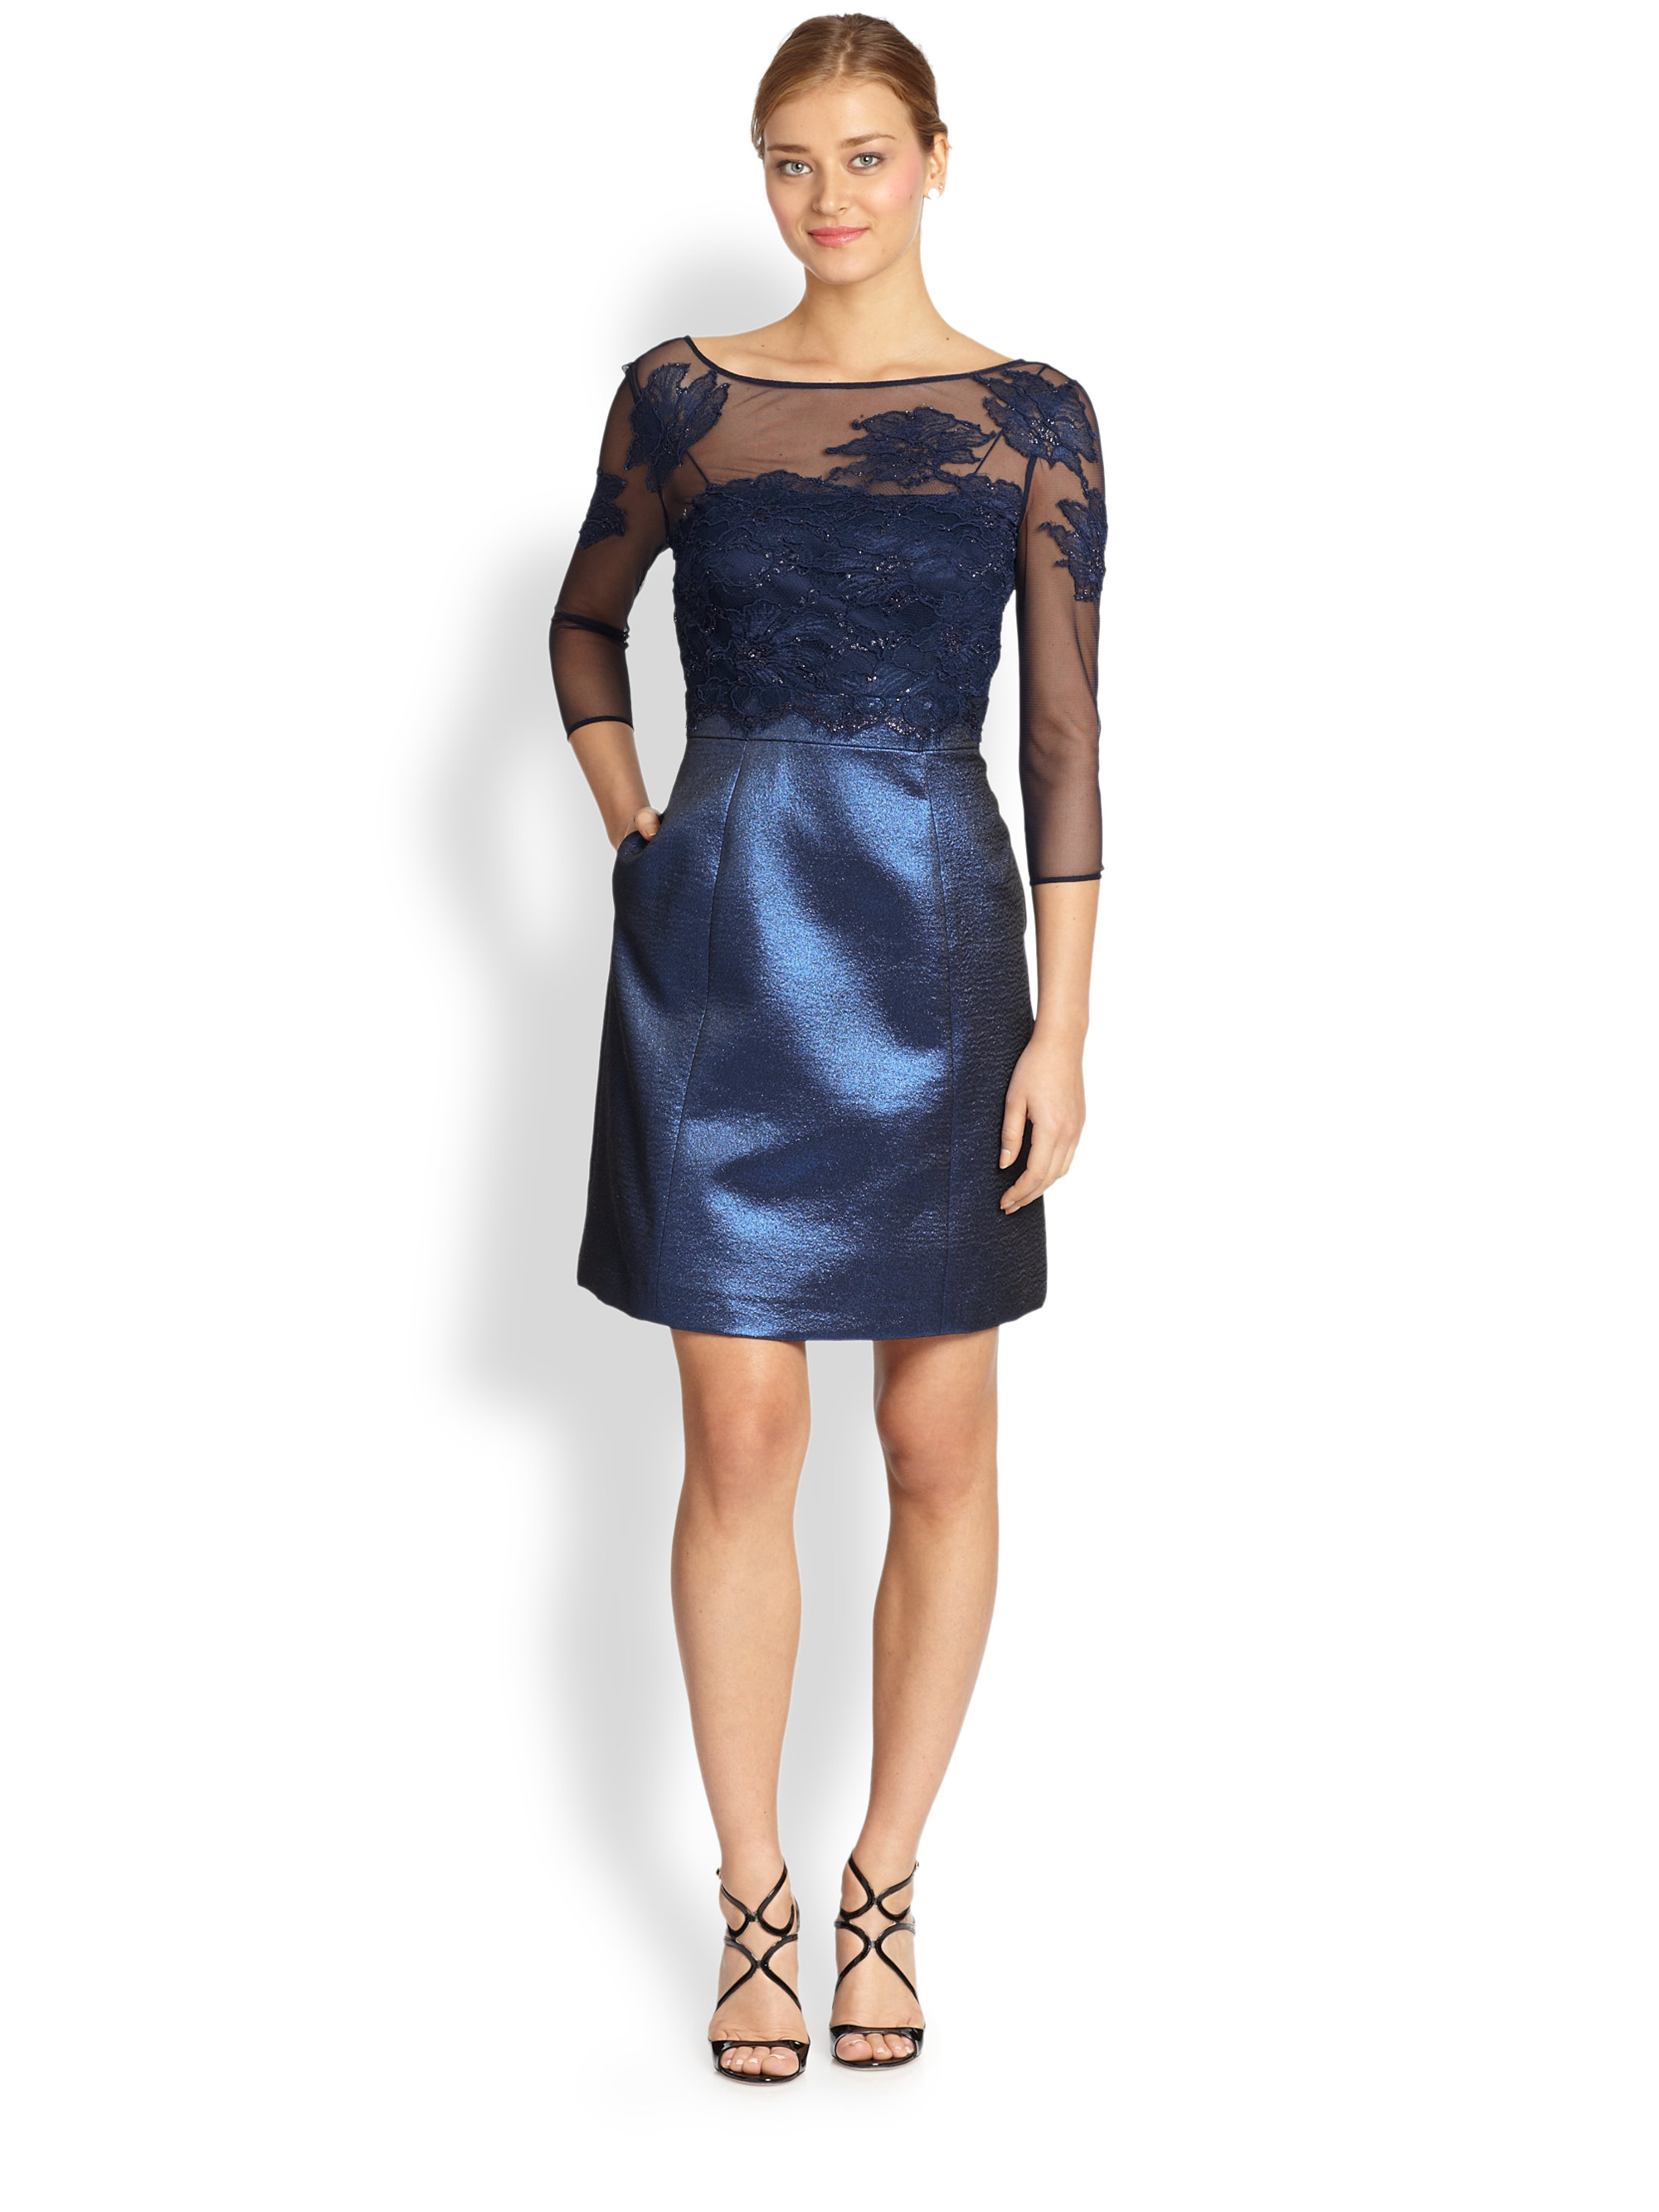 Lyst - Kay Unger Metallic Mixed-Media Cocktail Dress in Blue